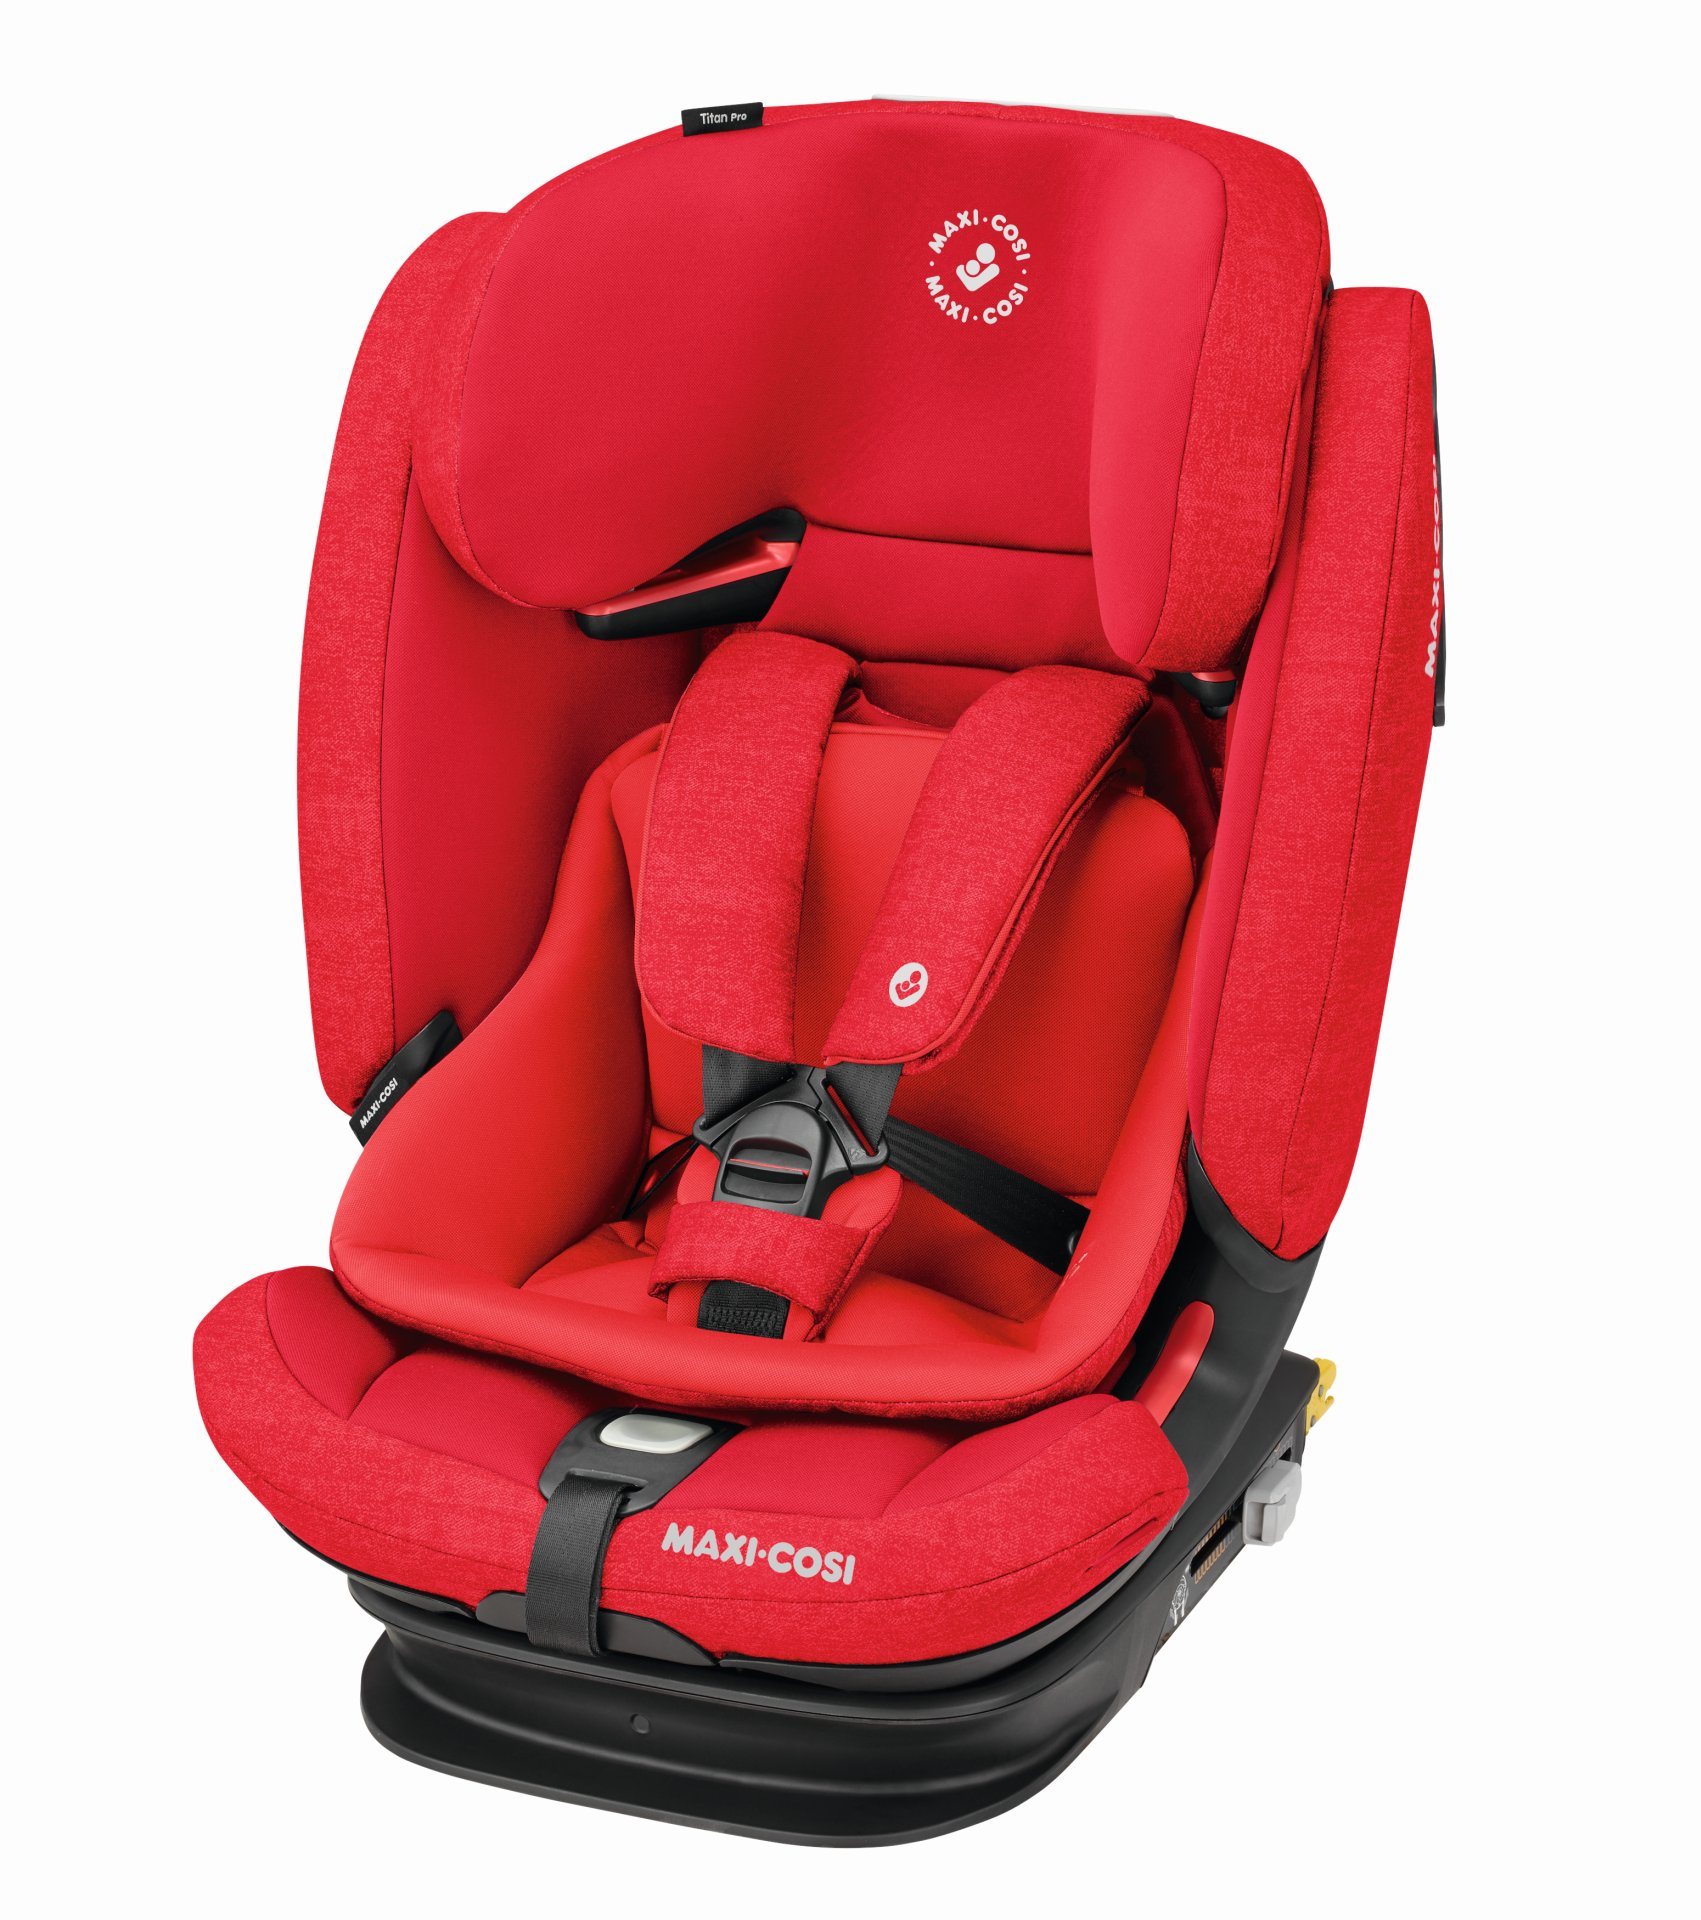 maxi cosi child car seat titan pro 2019 nomad red buy at kidsroom car seats. Black Bedroom Furniture Sets. Home Design Ideas